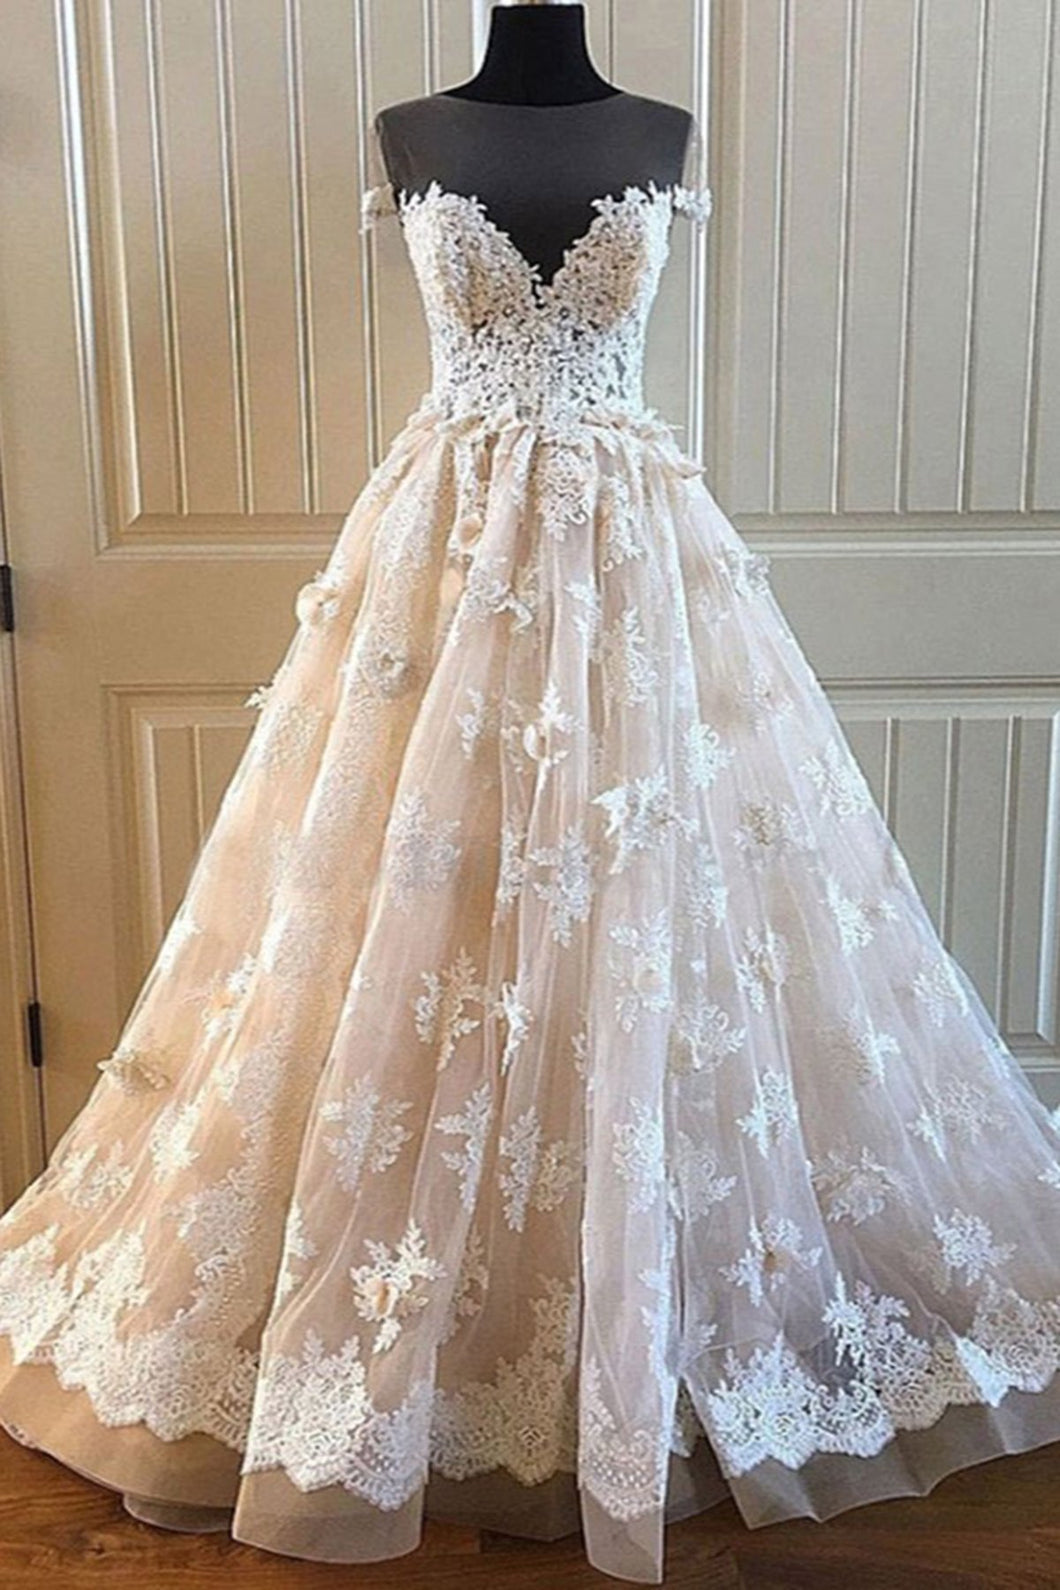 2019 Prom Dresses | Creamy lace sweetheart long a line prom dress, long wedding dress with sleeves